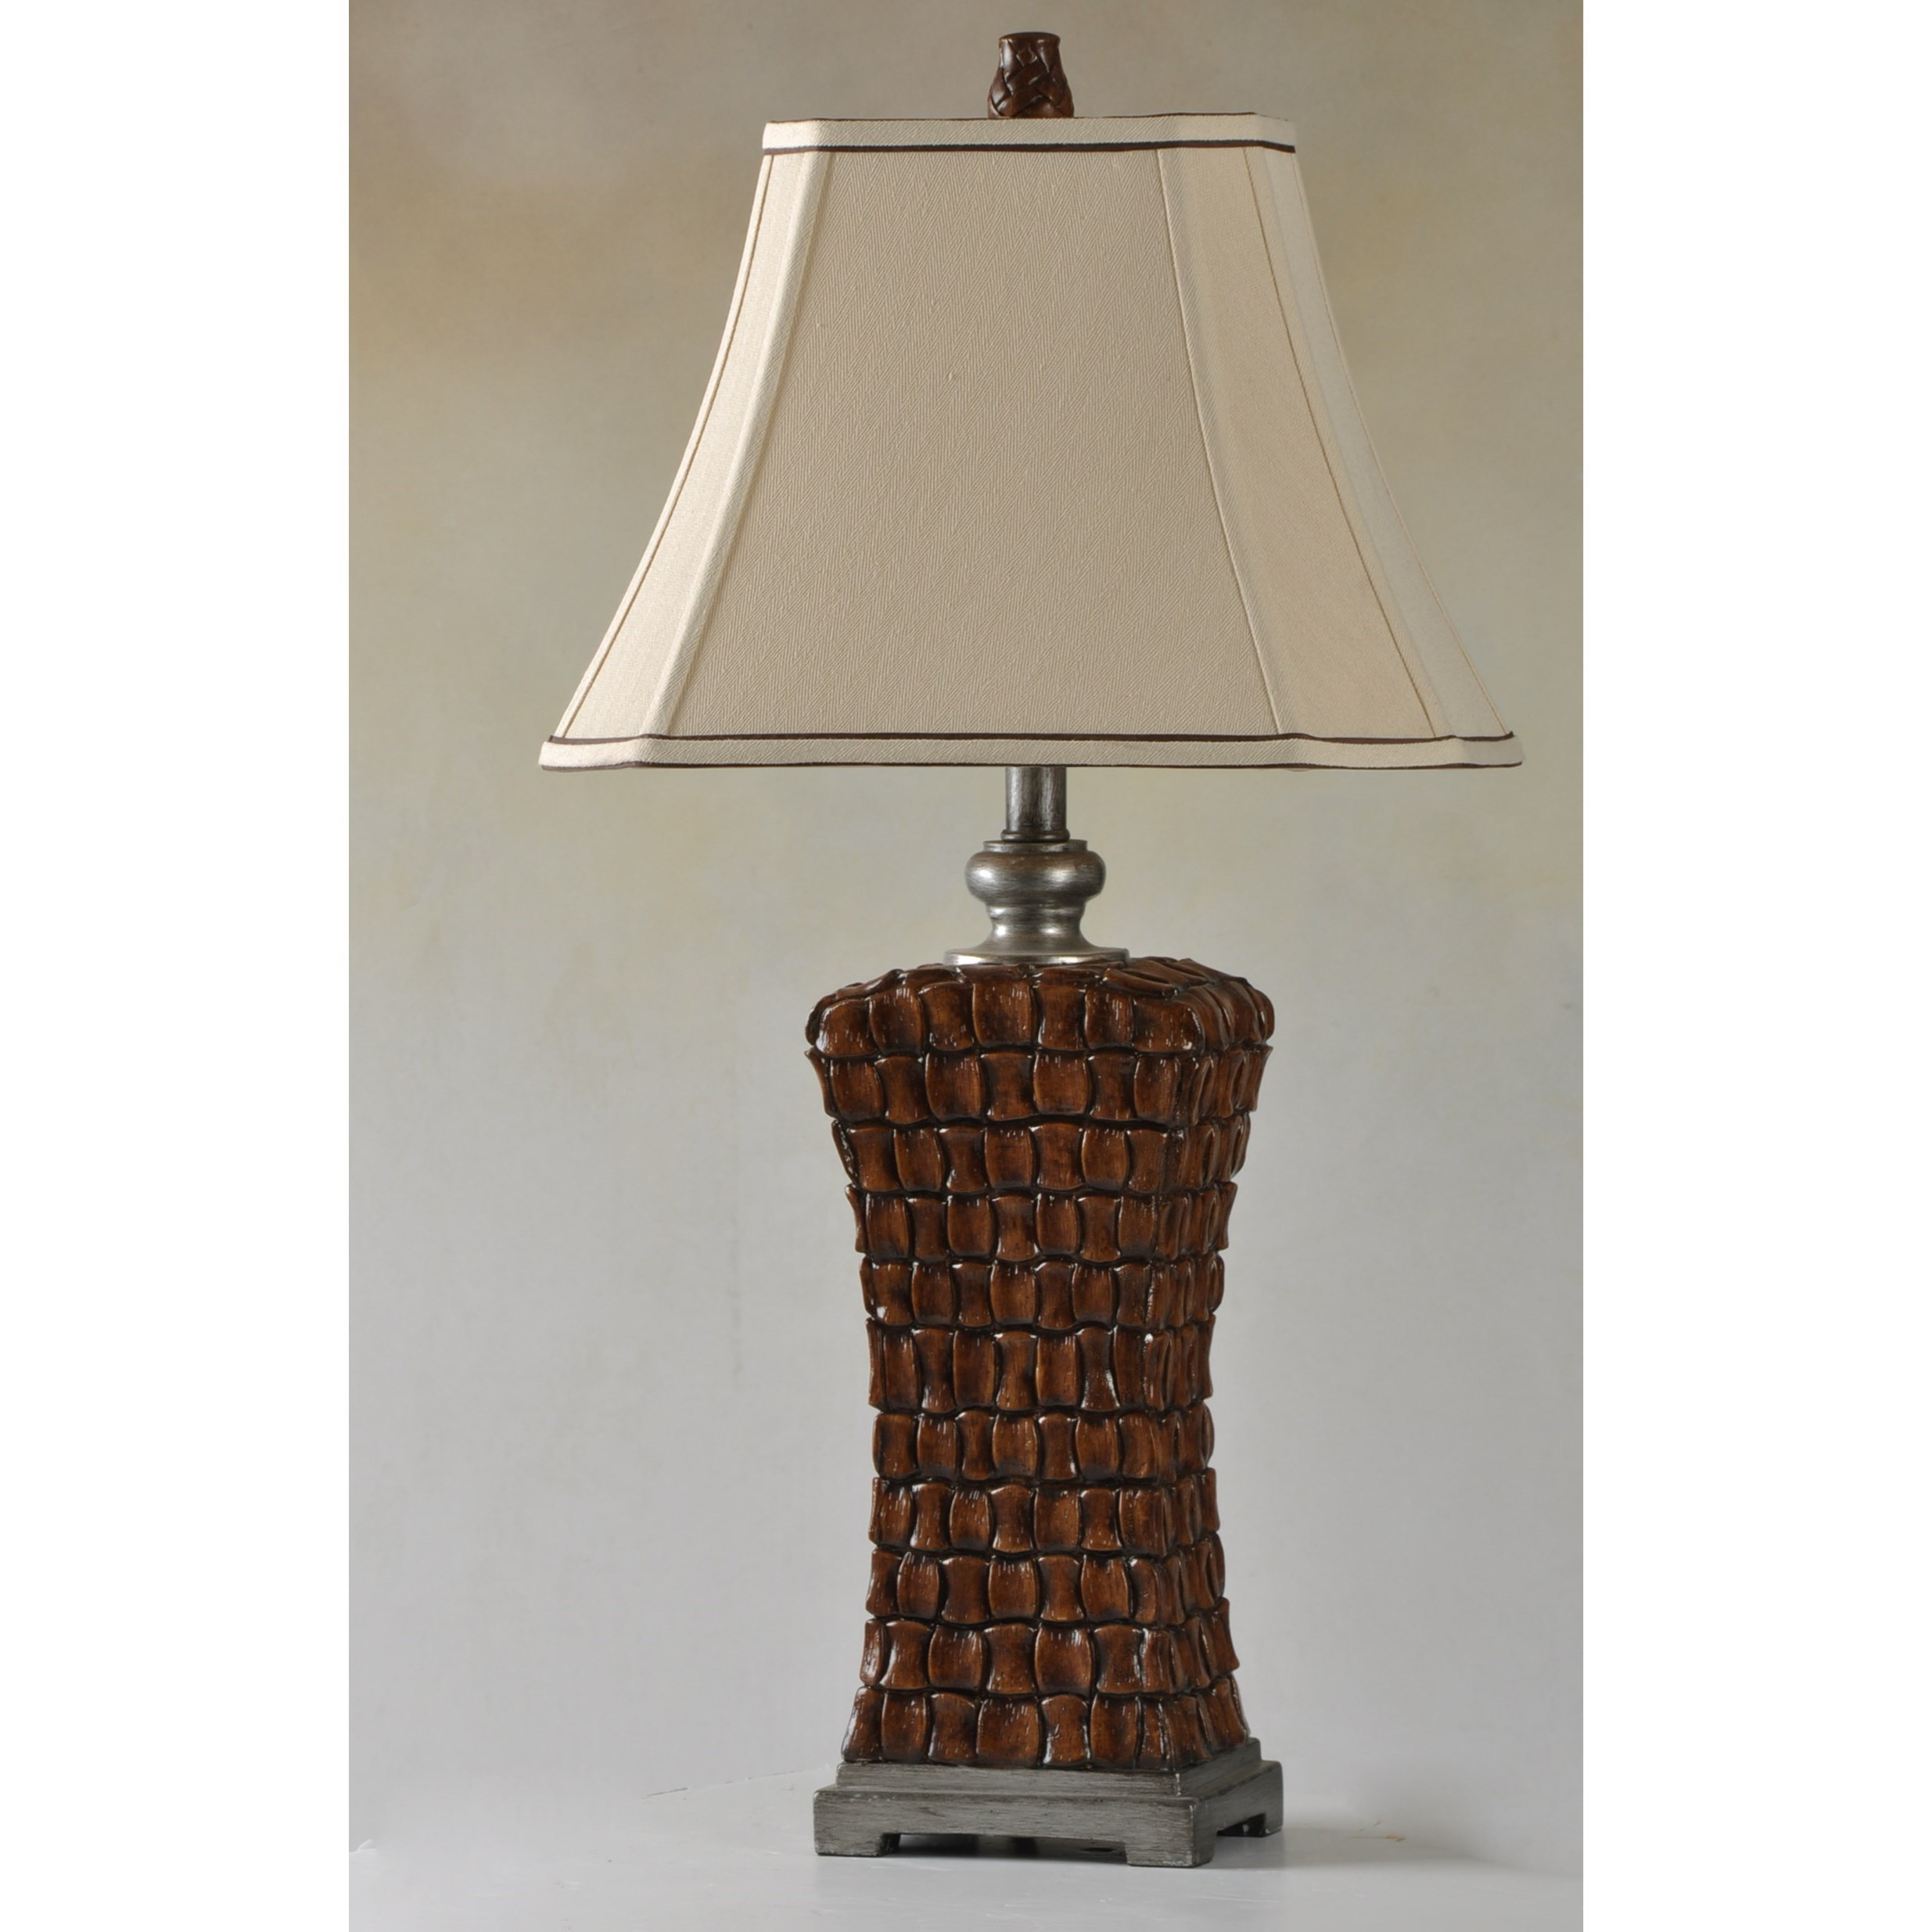 StyleCraft Lamps Table Lamp